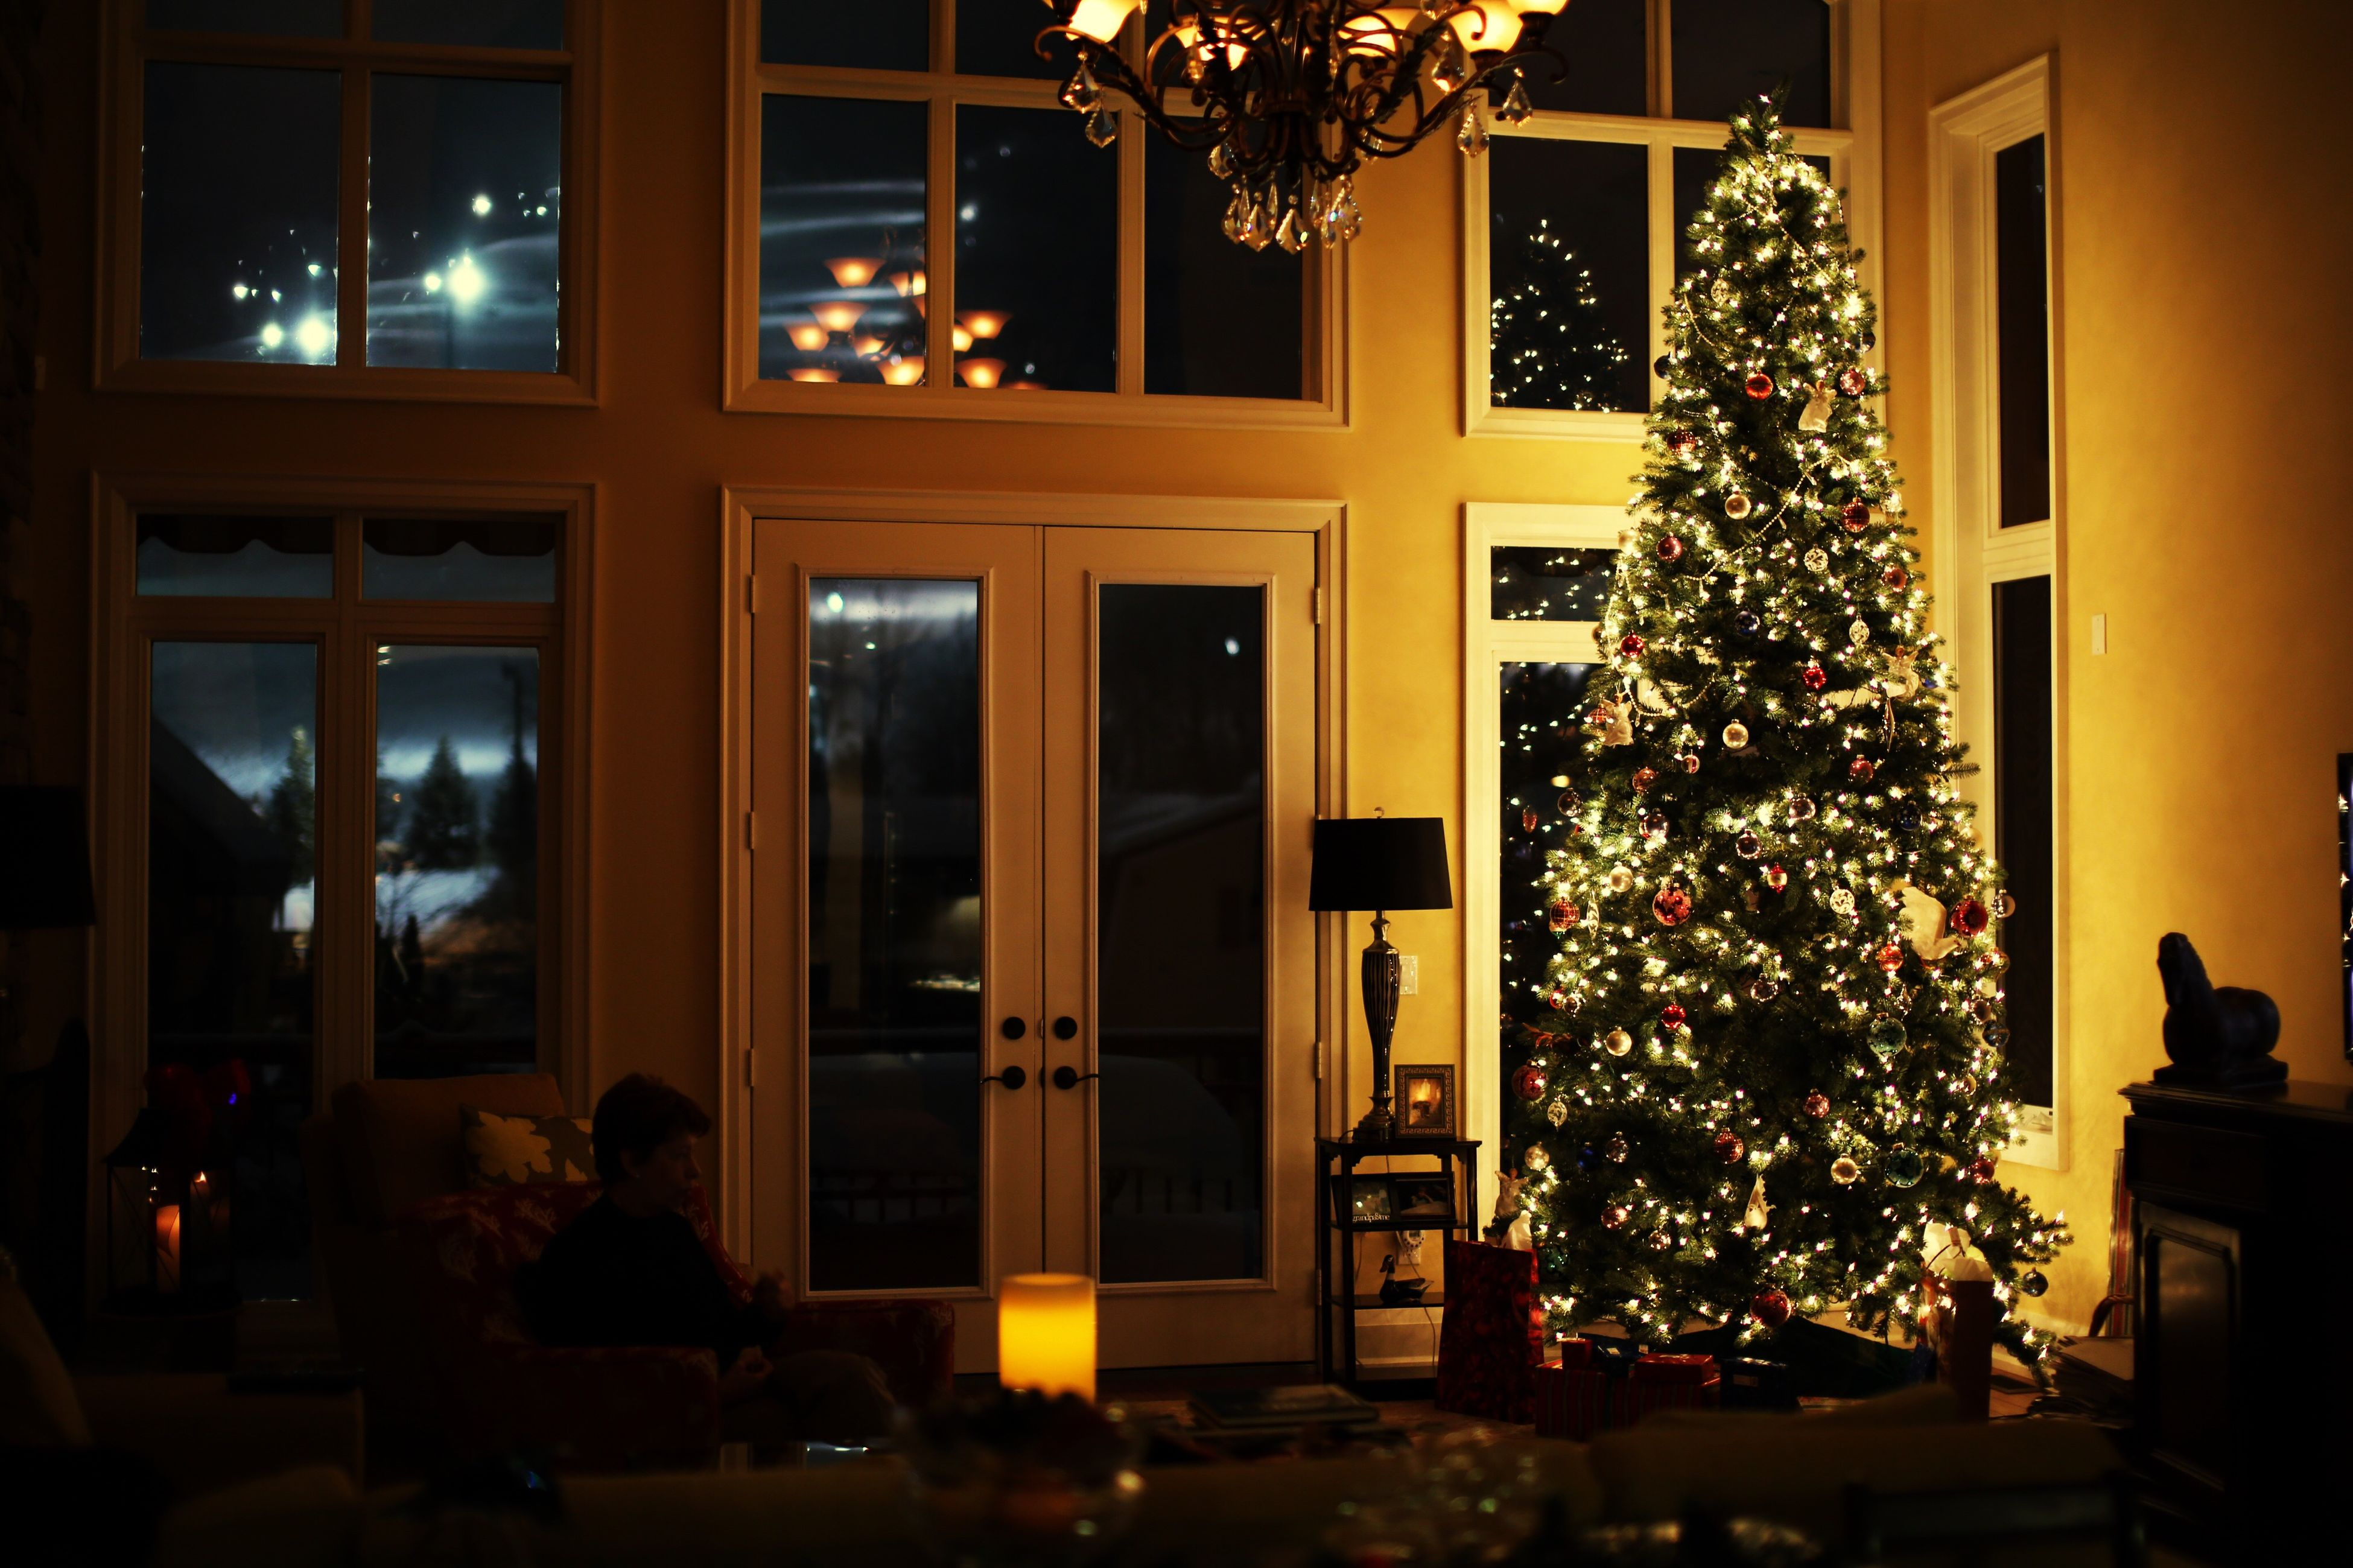 window, indoors, illuminated, glass - material, architecture, night, built structure, decoration, lighting equipment, home interior, building exterior, christmas, transparent, celebration, house, christmas decoration, christmas tree, curtain, dark, table